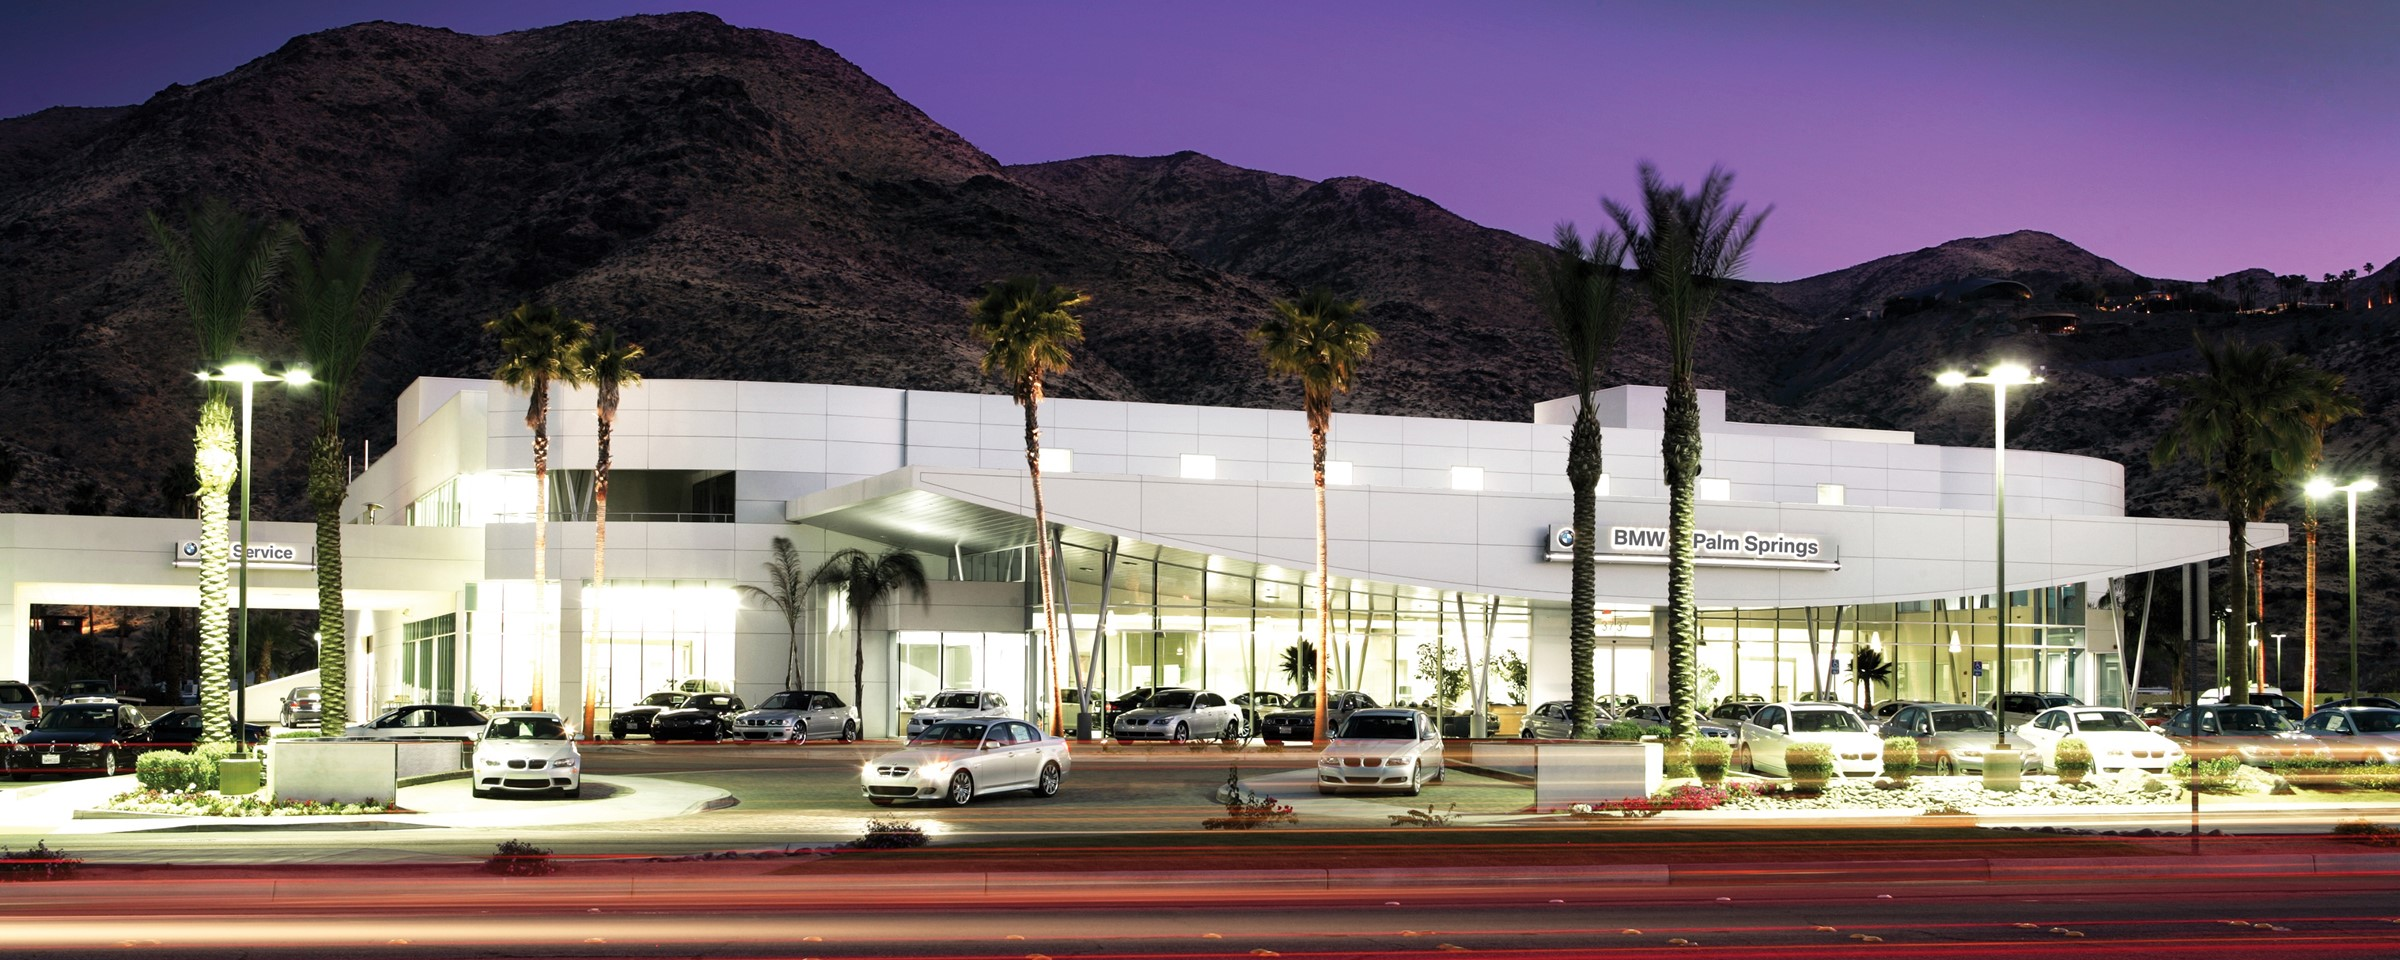 Indigo Auto Group Acquires Bmw Of Palm Springs Bmw Of